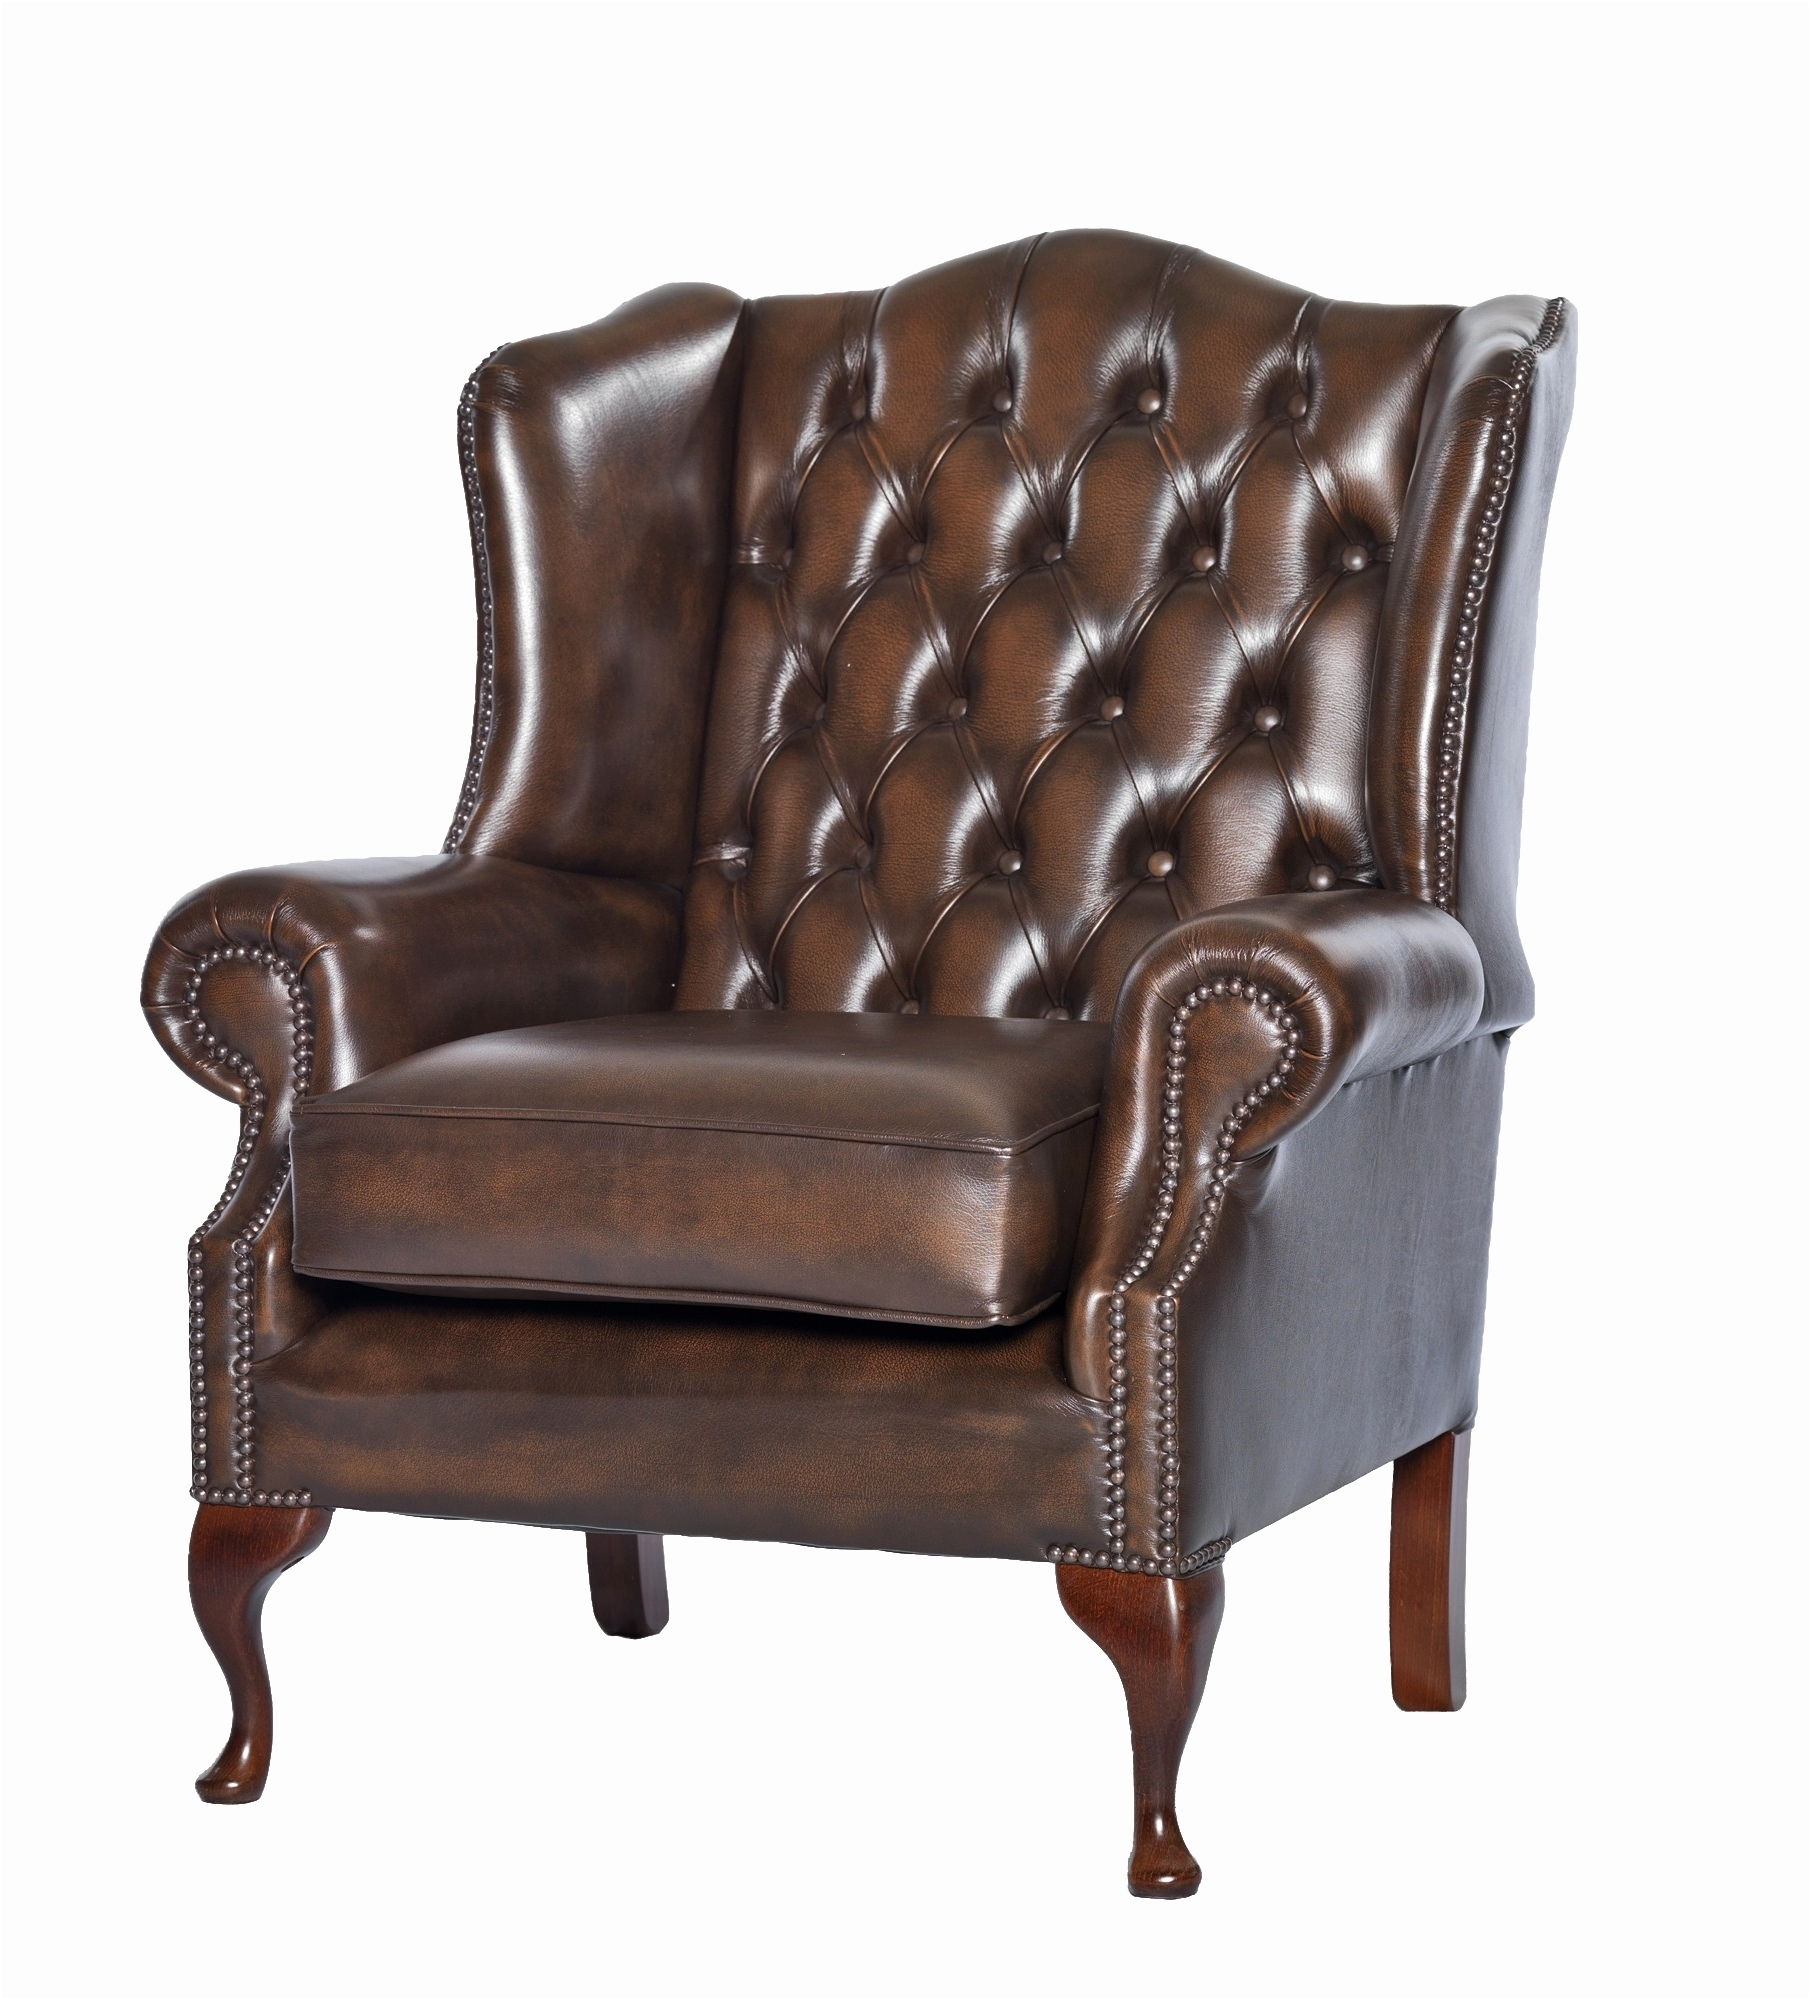 Popular Chesterfield Sofas And Chairs Throughout Elegant Used Chesterfield Sofa Luxury – Intuisiblog (View 4 of 20)